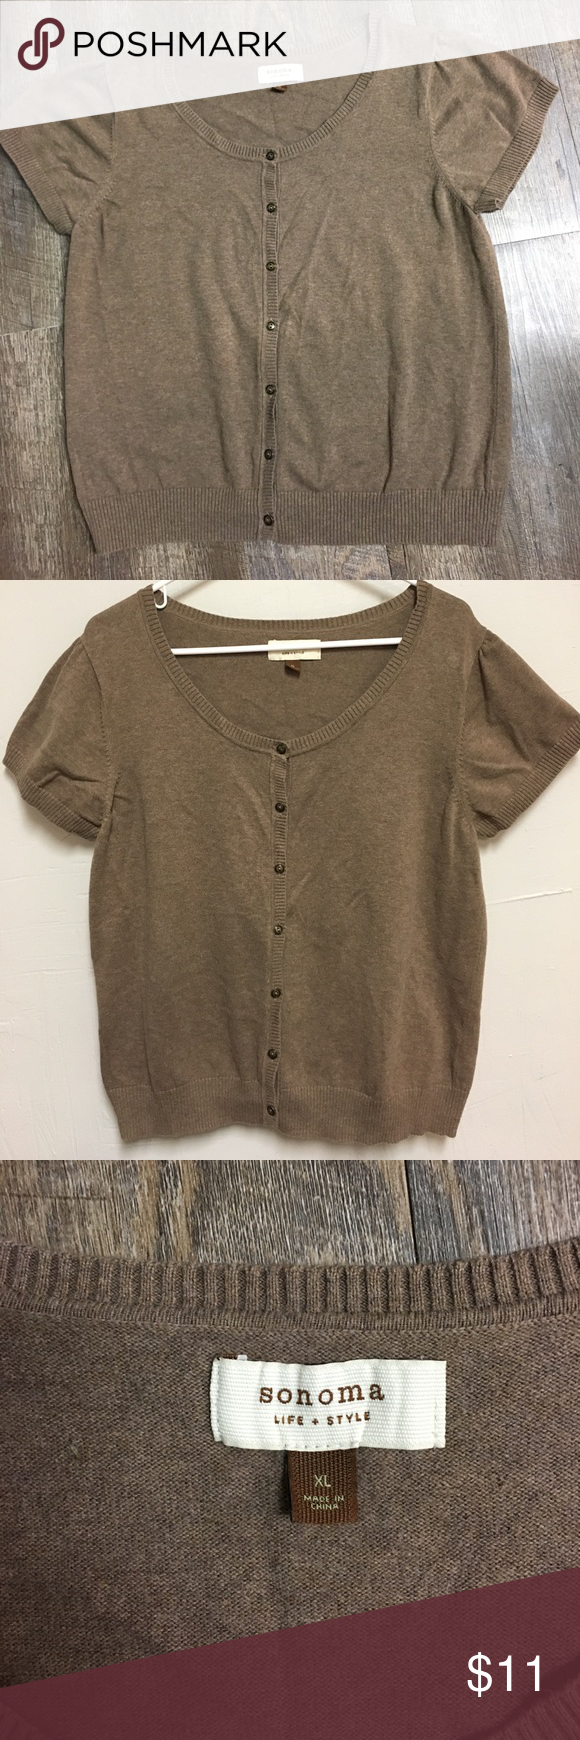 Sonoma brown cardigan | Brown shorts, Short sleeves and Brown